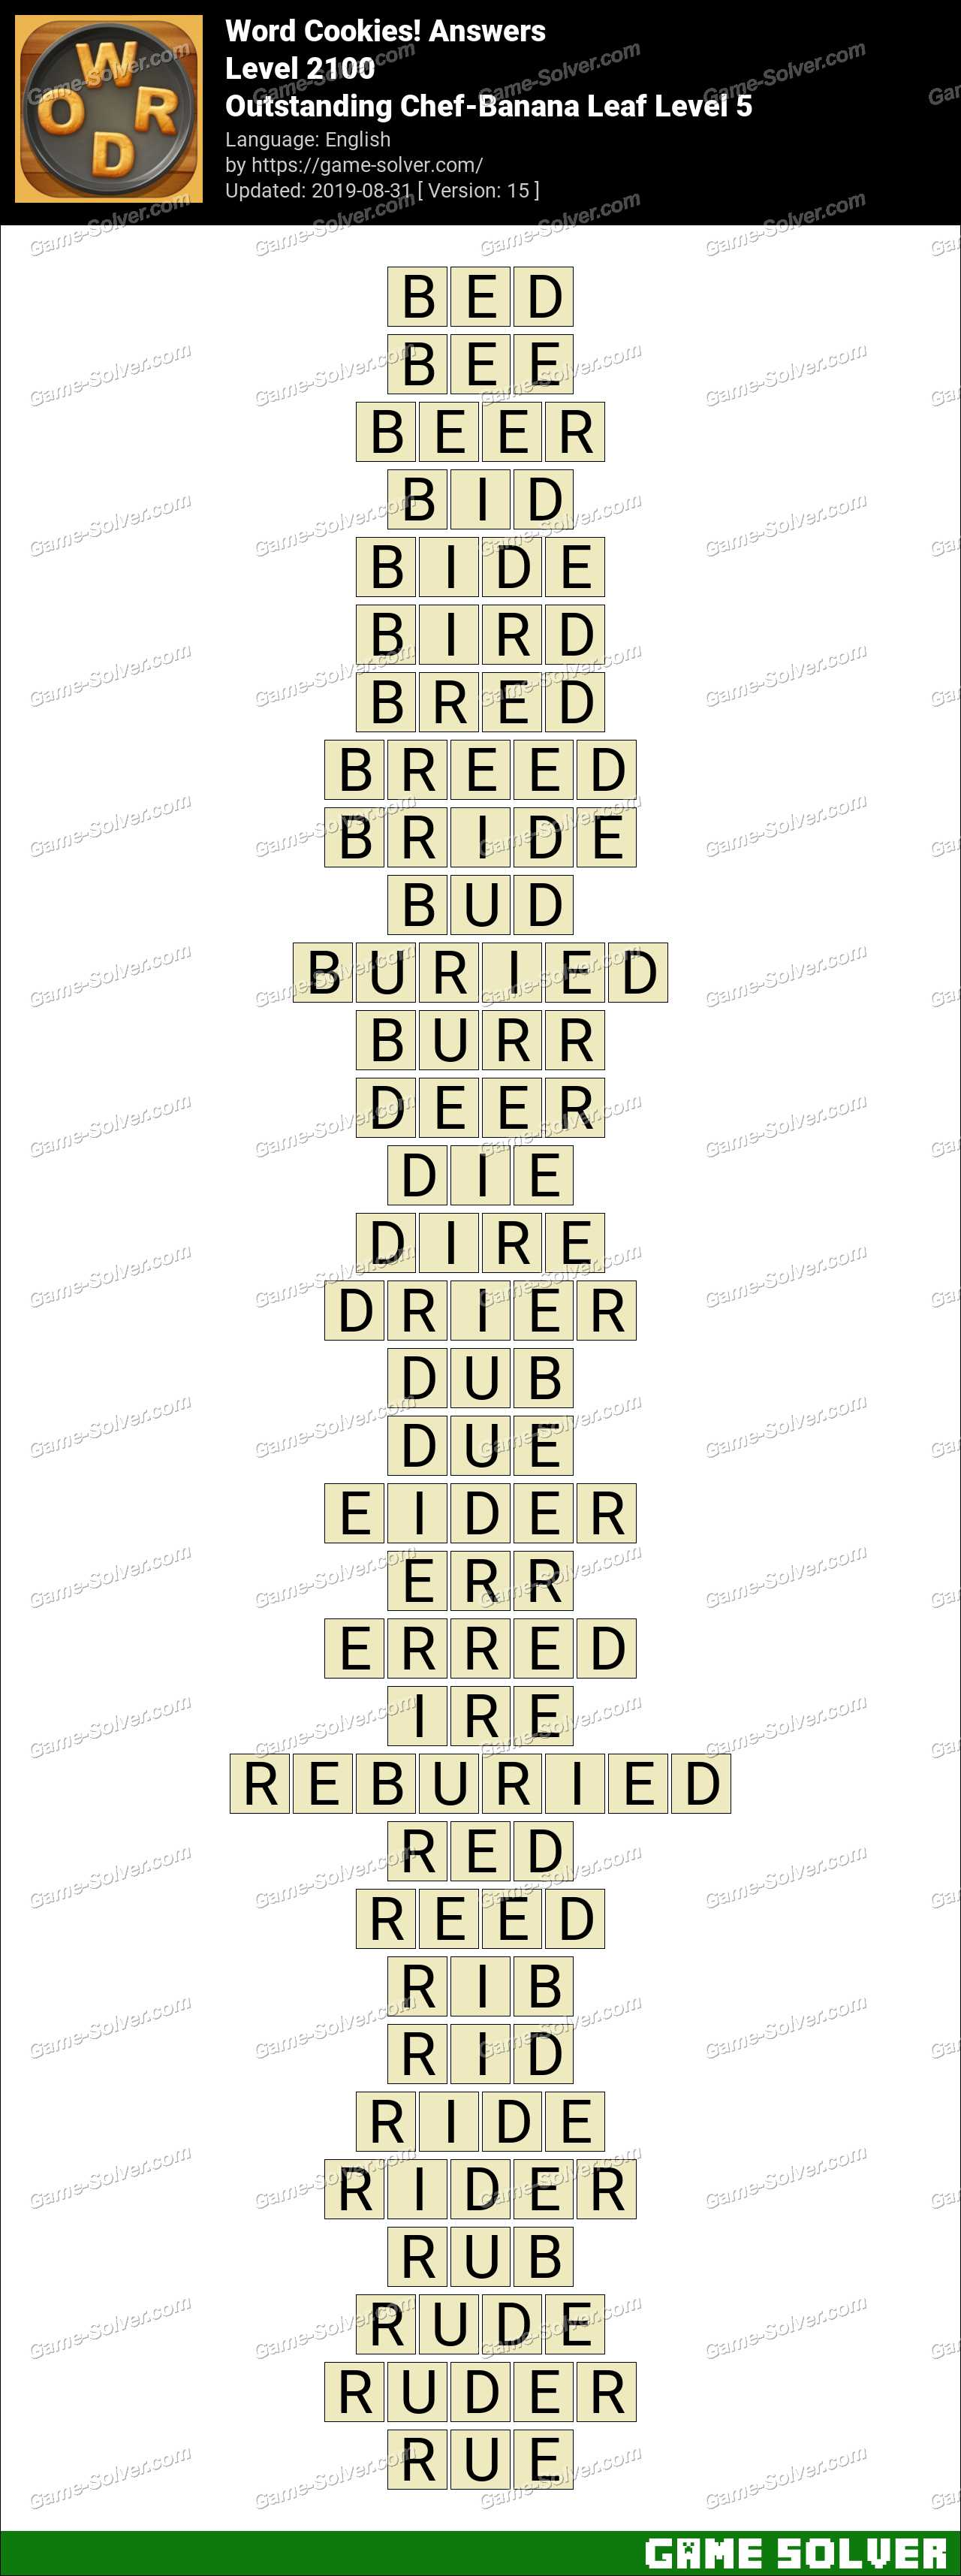 Word Cookies Outstanding Chef-Banana Leaf Level 5 Answers